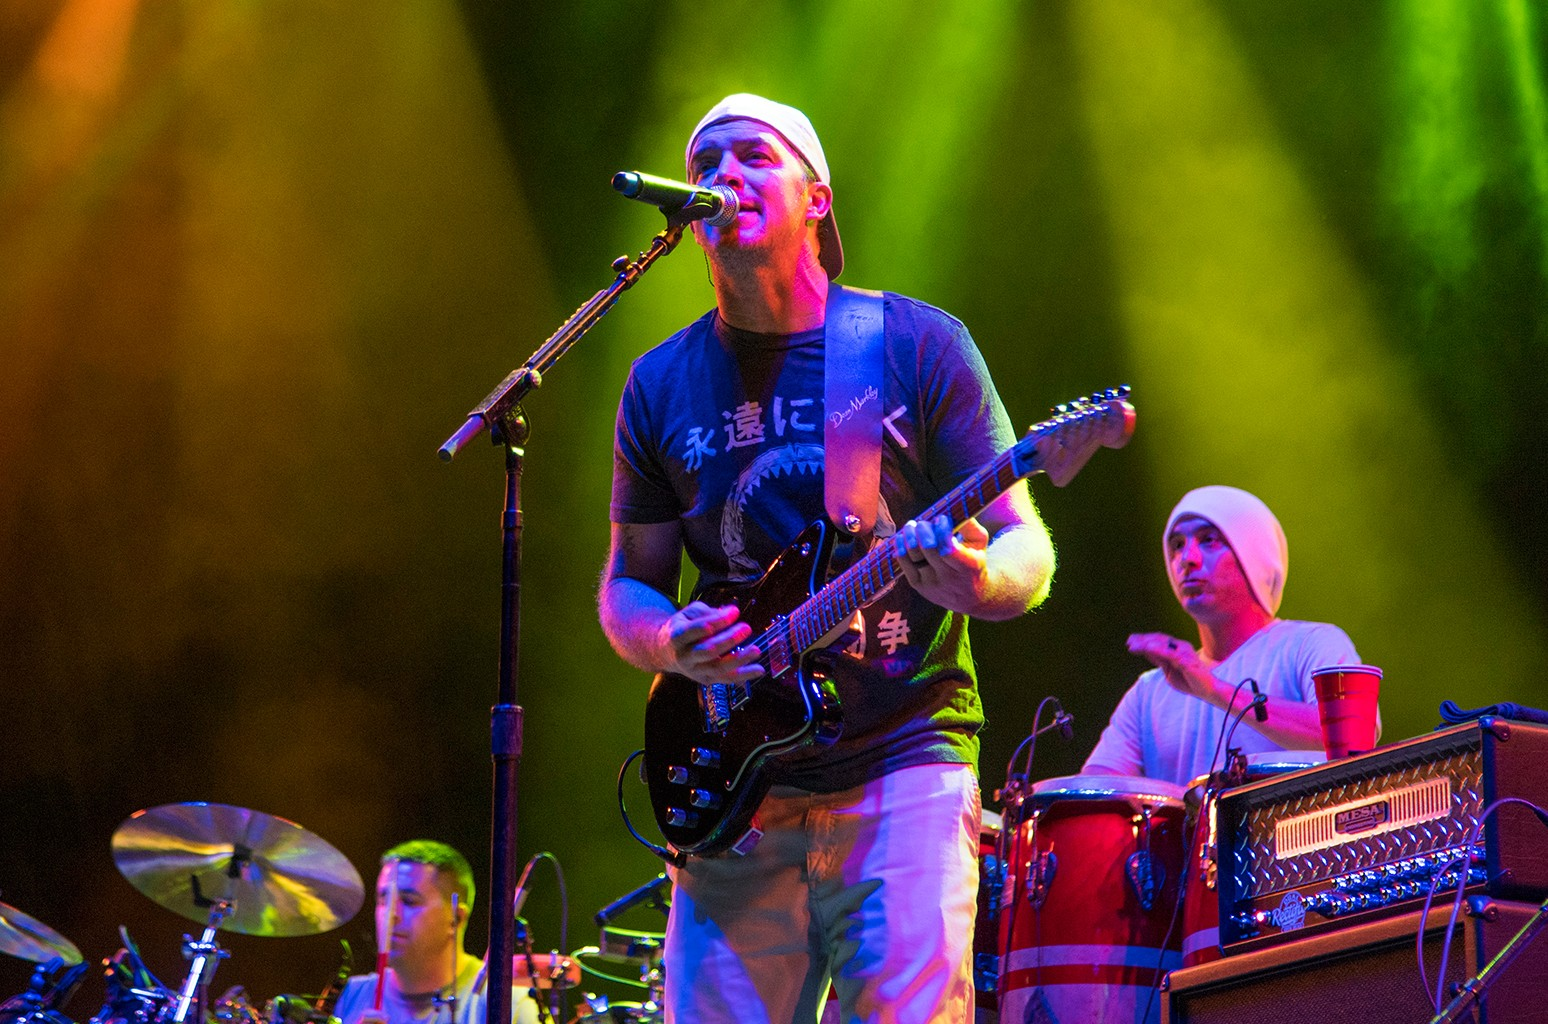 Miles Doughty of Slightly Stoopid performs during Okeechobee Festival at Sunshine Grove on March 2, 2018 in Okeechobee, Fla.